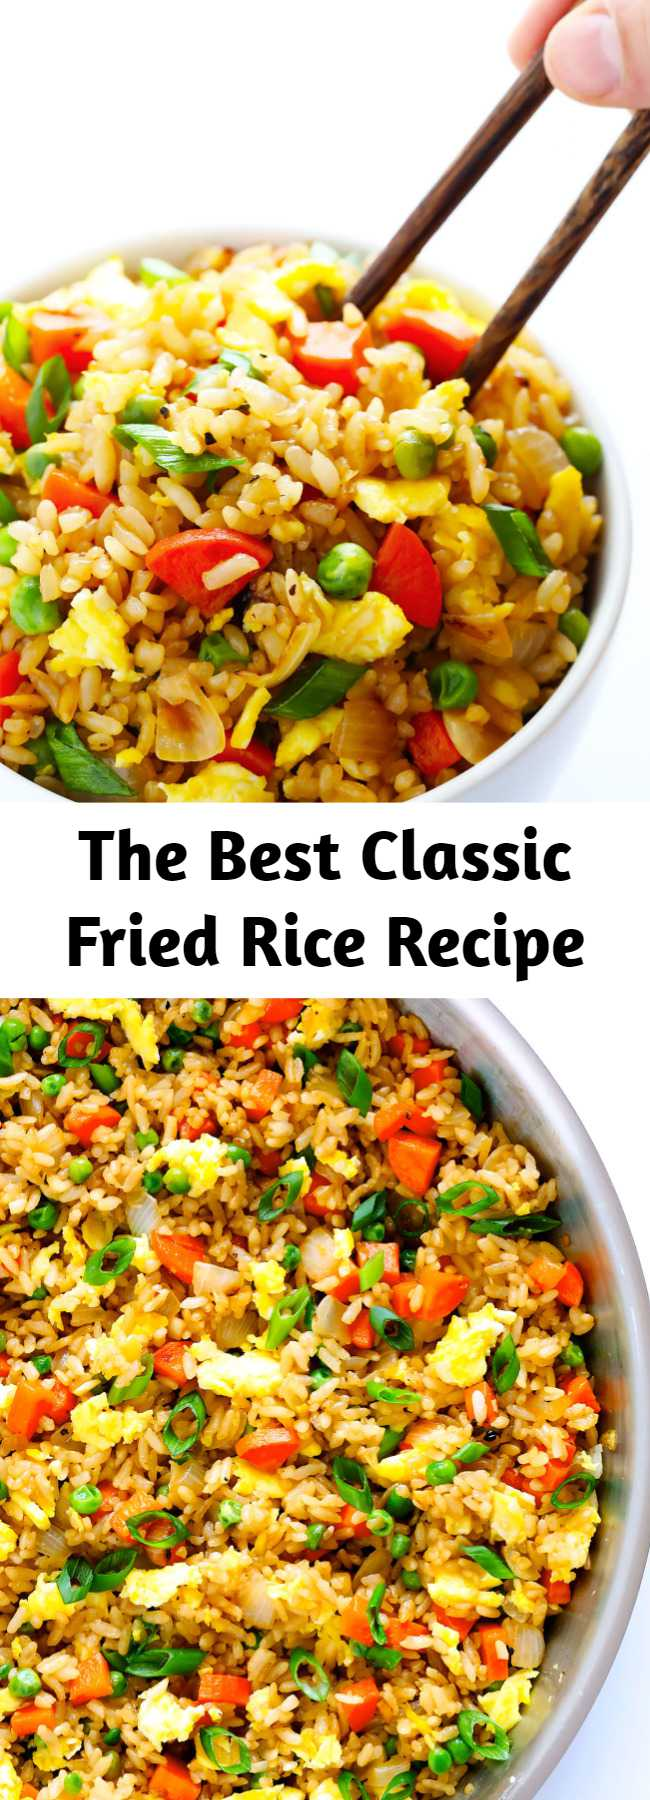 The Best Classic Fried Rice Recipe - Learn how to make fried rice with this classic recipe. It only takes 15 minutes to make, it's easy to customize with your favorite add-ins, and it's SO flavorful and delicious!